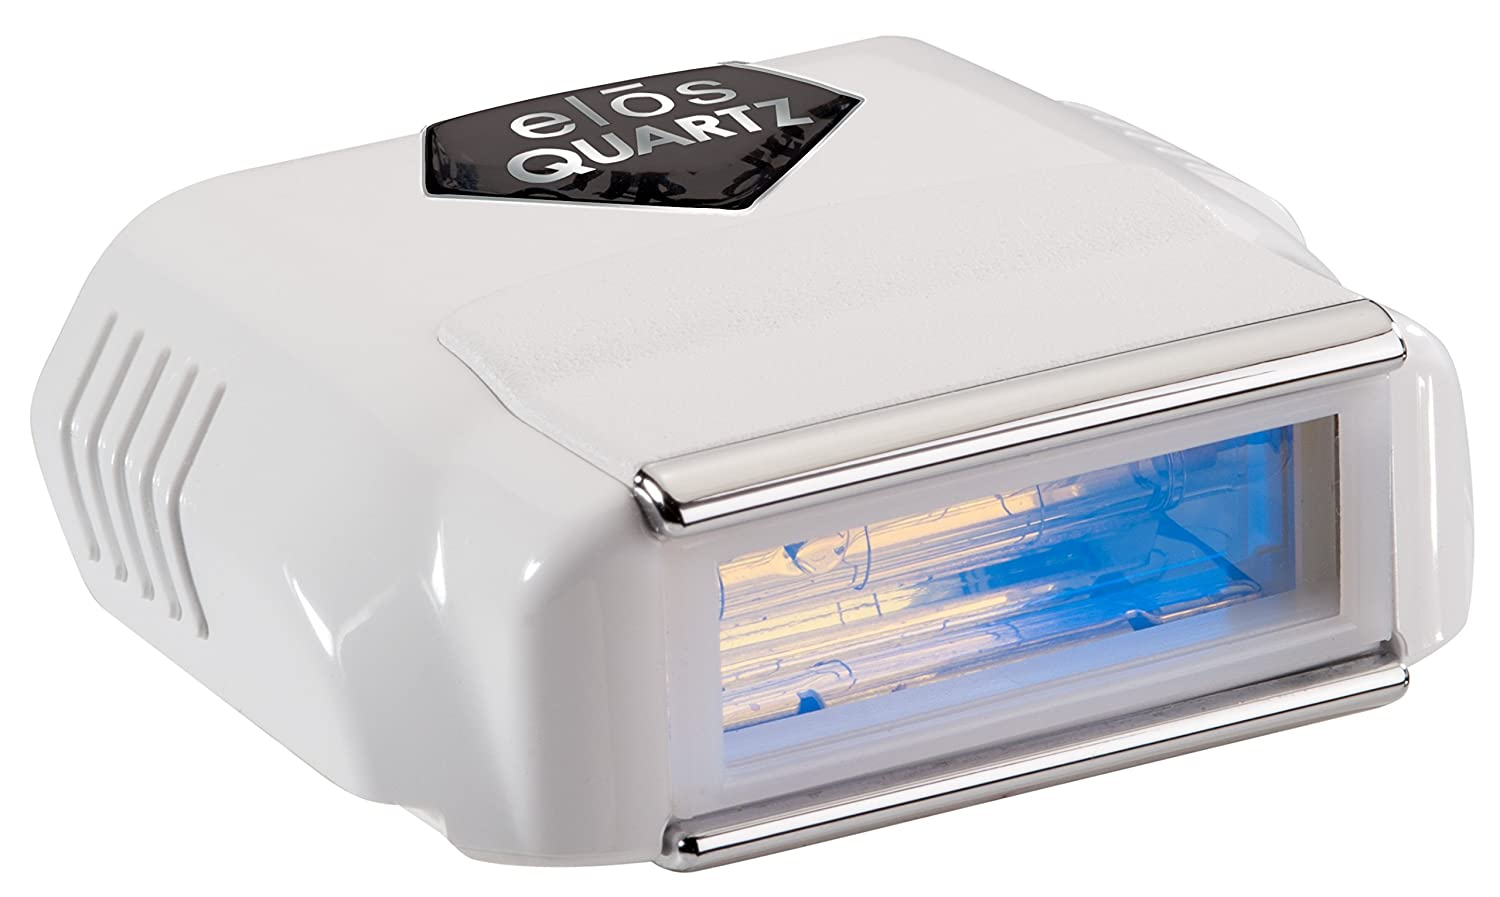 Homedics Me My Elos Permenent Hair Reduction Me Plus Pulse Cartridge HoMedics Group Ltd 4051123000909 QUARTZ-LAMP-120